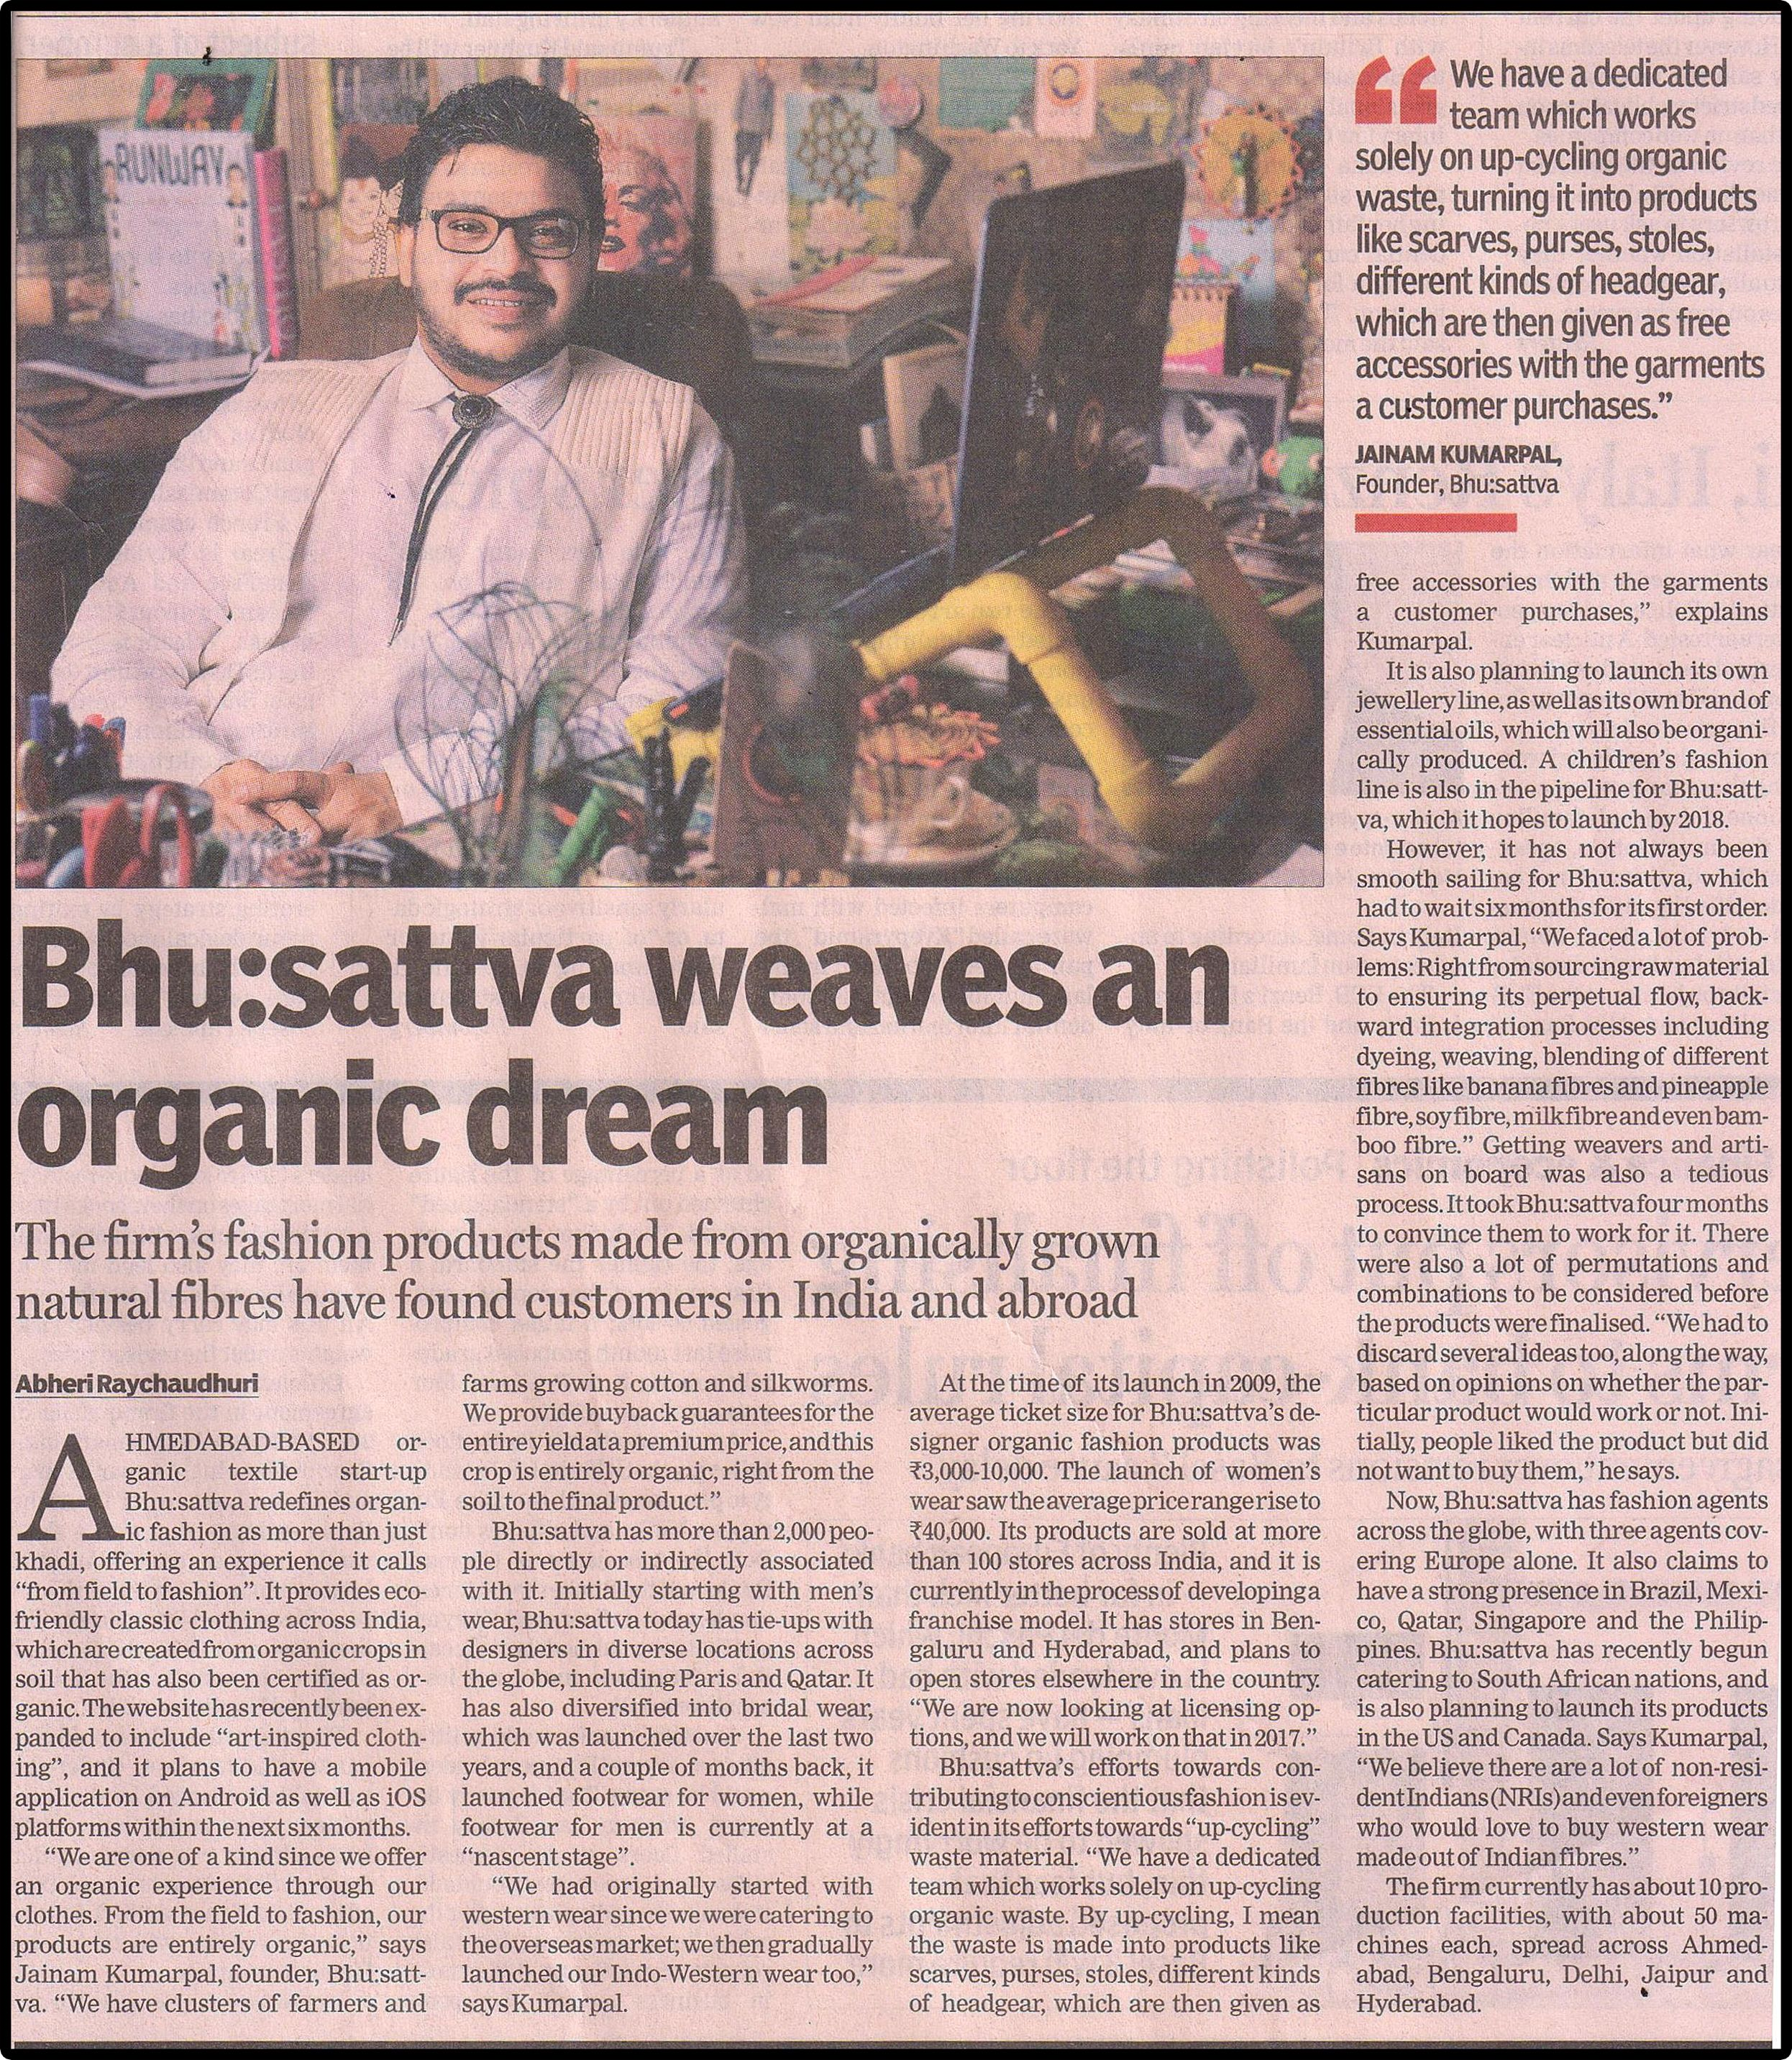 Discussing New Ventures and Ideologies to promote Sustainable Development in Fashion. Financial Express, Jan 11, 2017.  #Bhusattva #Organic #Pret #Couture #MediaFeature #FinancialExpress #HandEmbroidered #SkinFriendly #BreatheEasy #ReflectOrganic #RevealYourself #iWearBhusattva #BelieveWhatYouWear #TrustNature #MysticalNature #CloseToNature #OrganicIdeology #OrganicCollection #NaturalDyes #EcoFashion #OrganicFashion #SustainableFashion #GoOrganic #WearOrganic #DesignerLabel